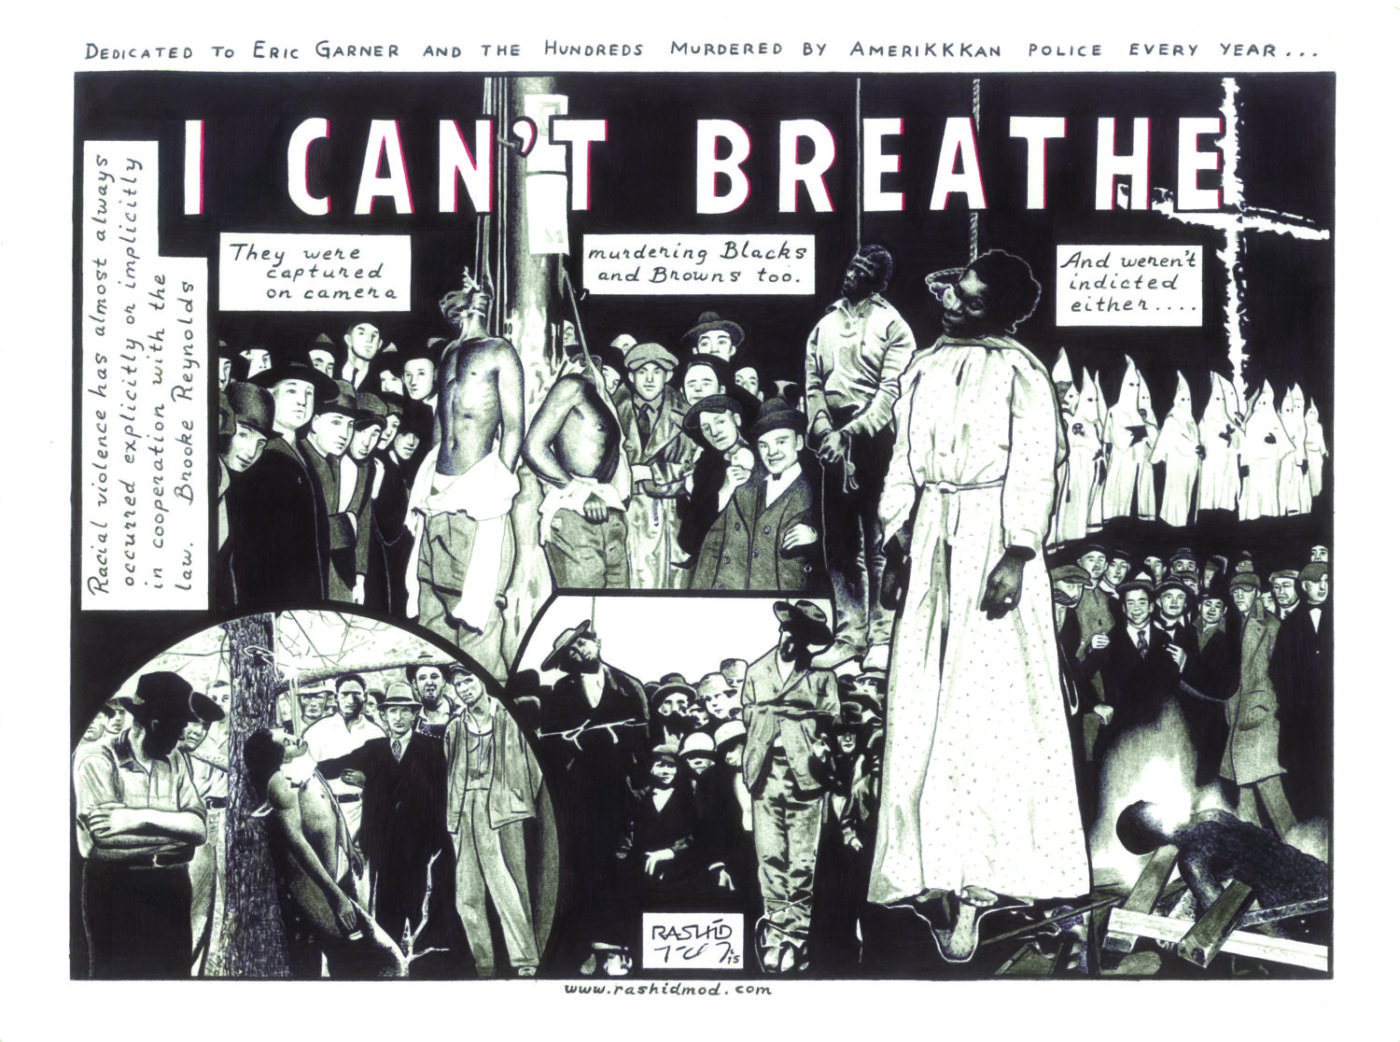 I-cant-breathe-art-by-Kevin-Rashid-Johnson-1400x1042, We can't breathe: On the lynching of George Floyd, National News & Views